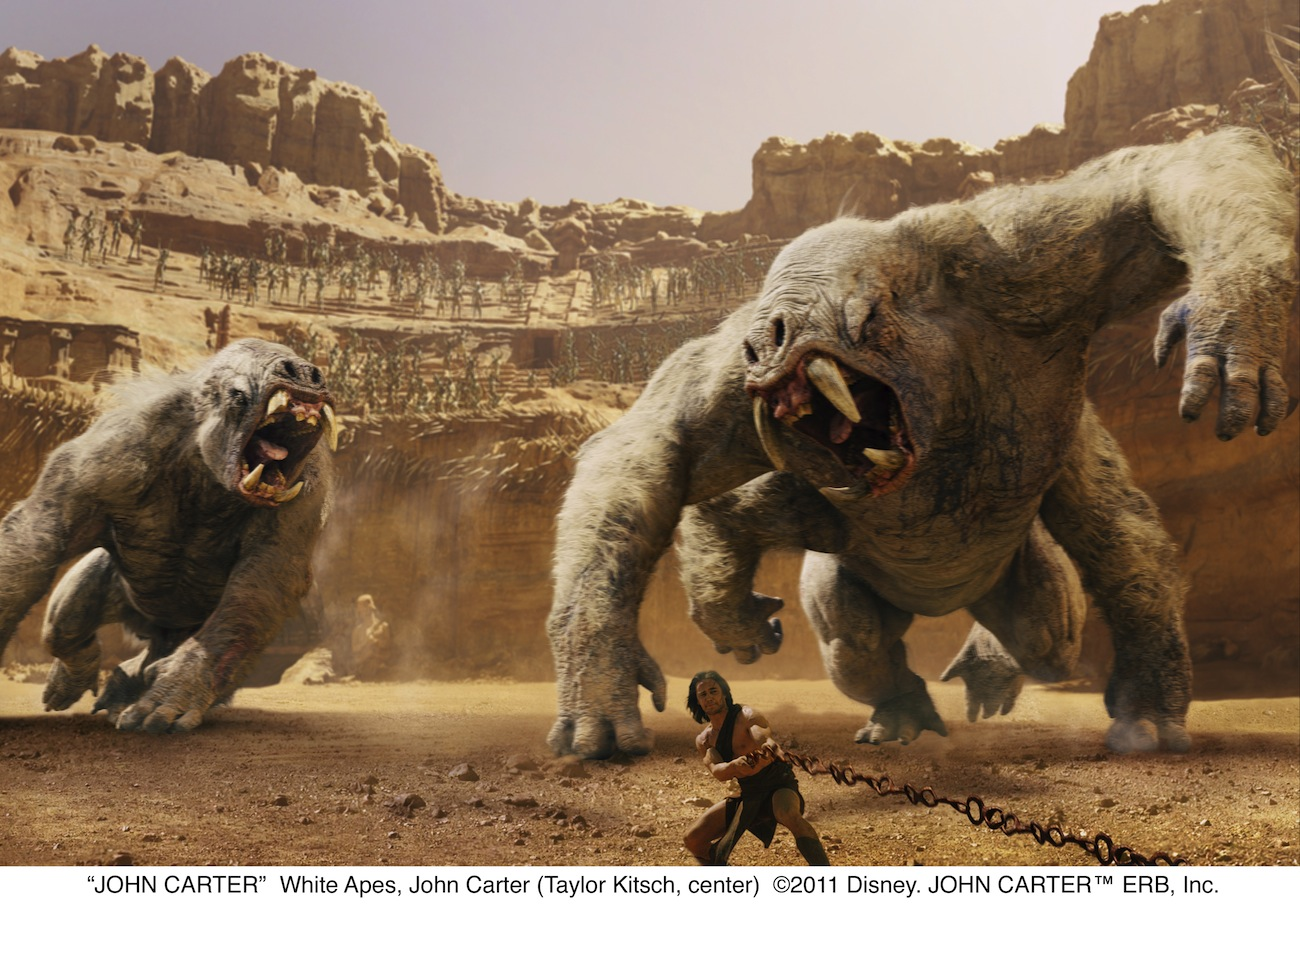 Director Andrew Stanton Dispels 'John Carter' Myths